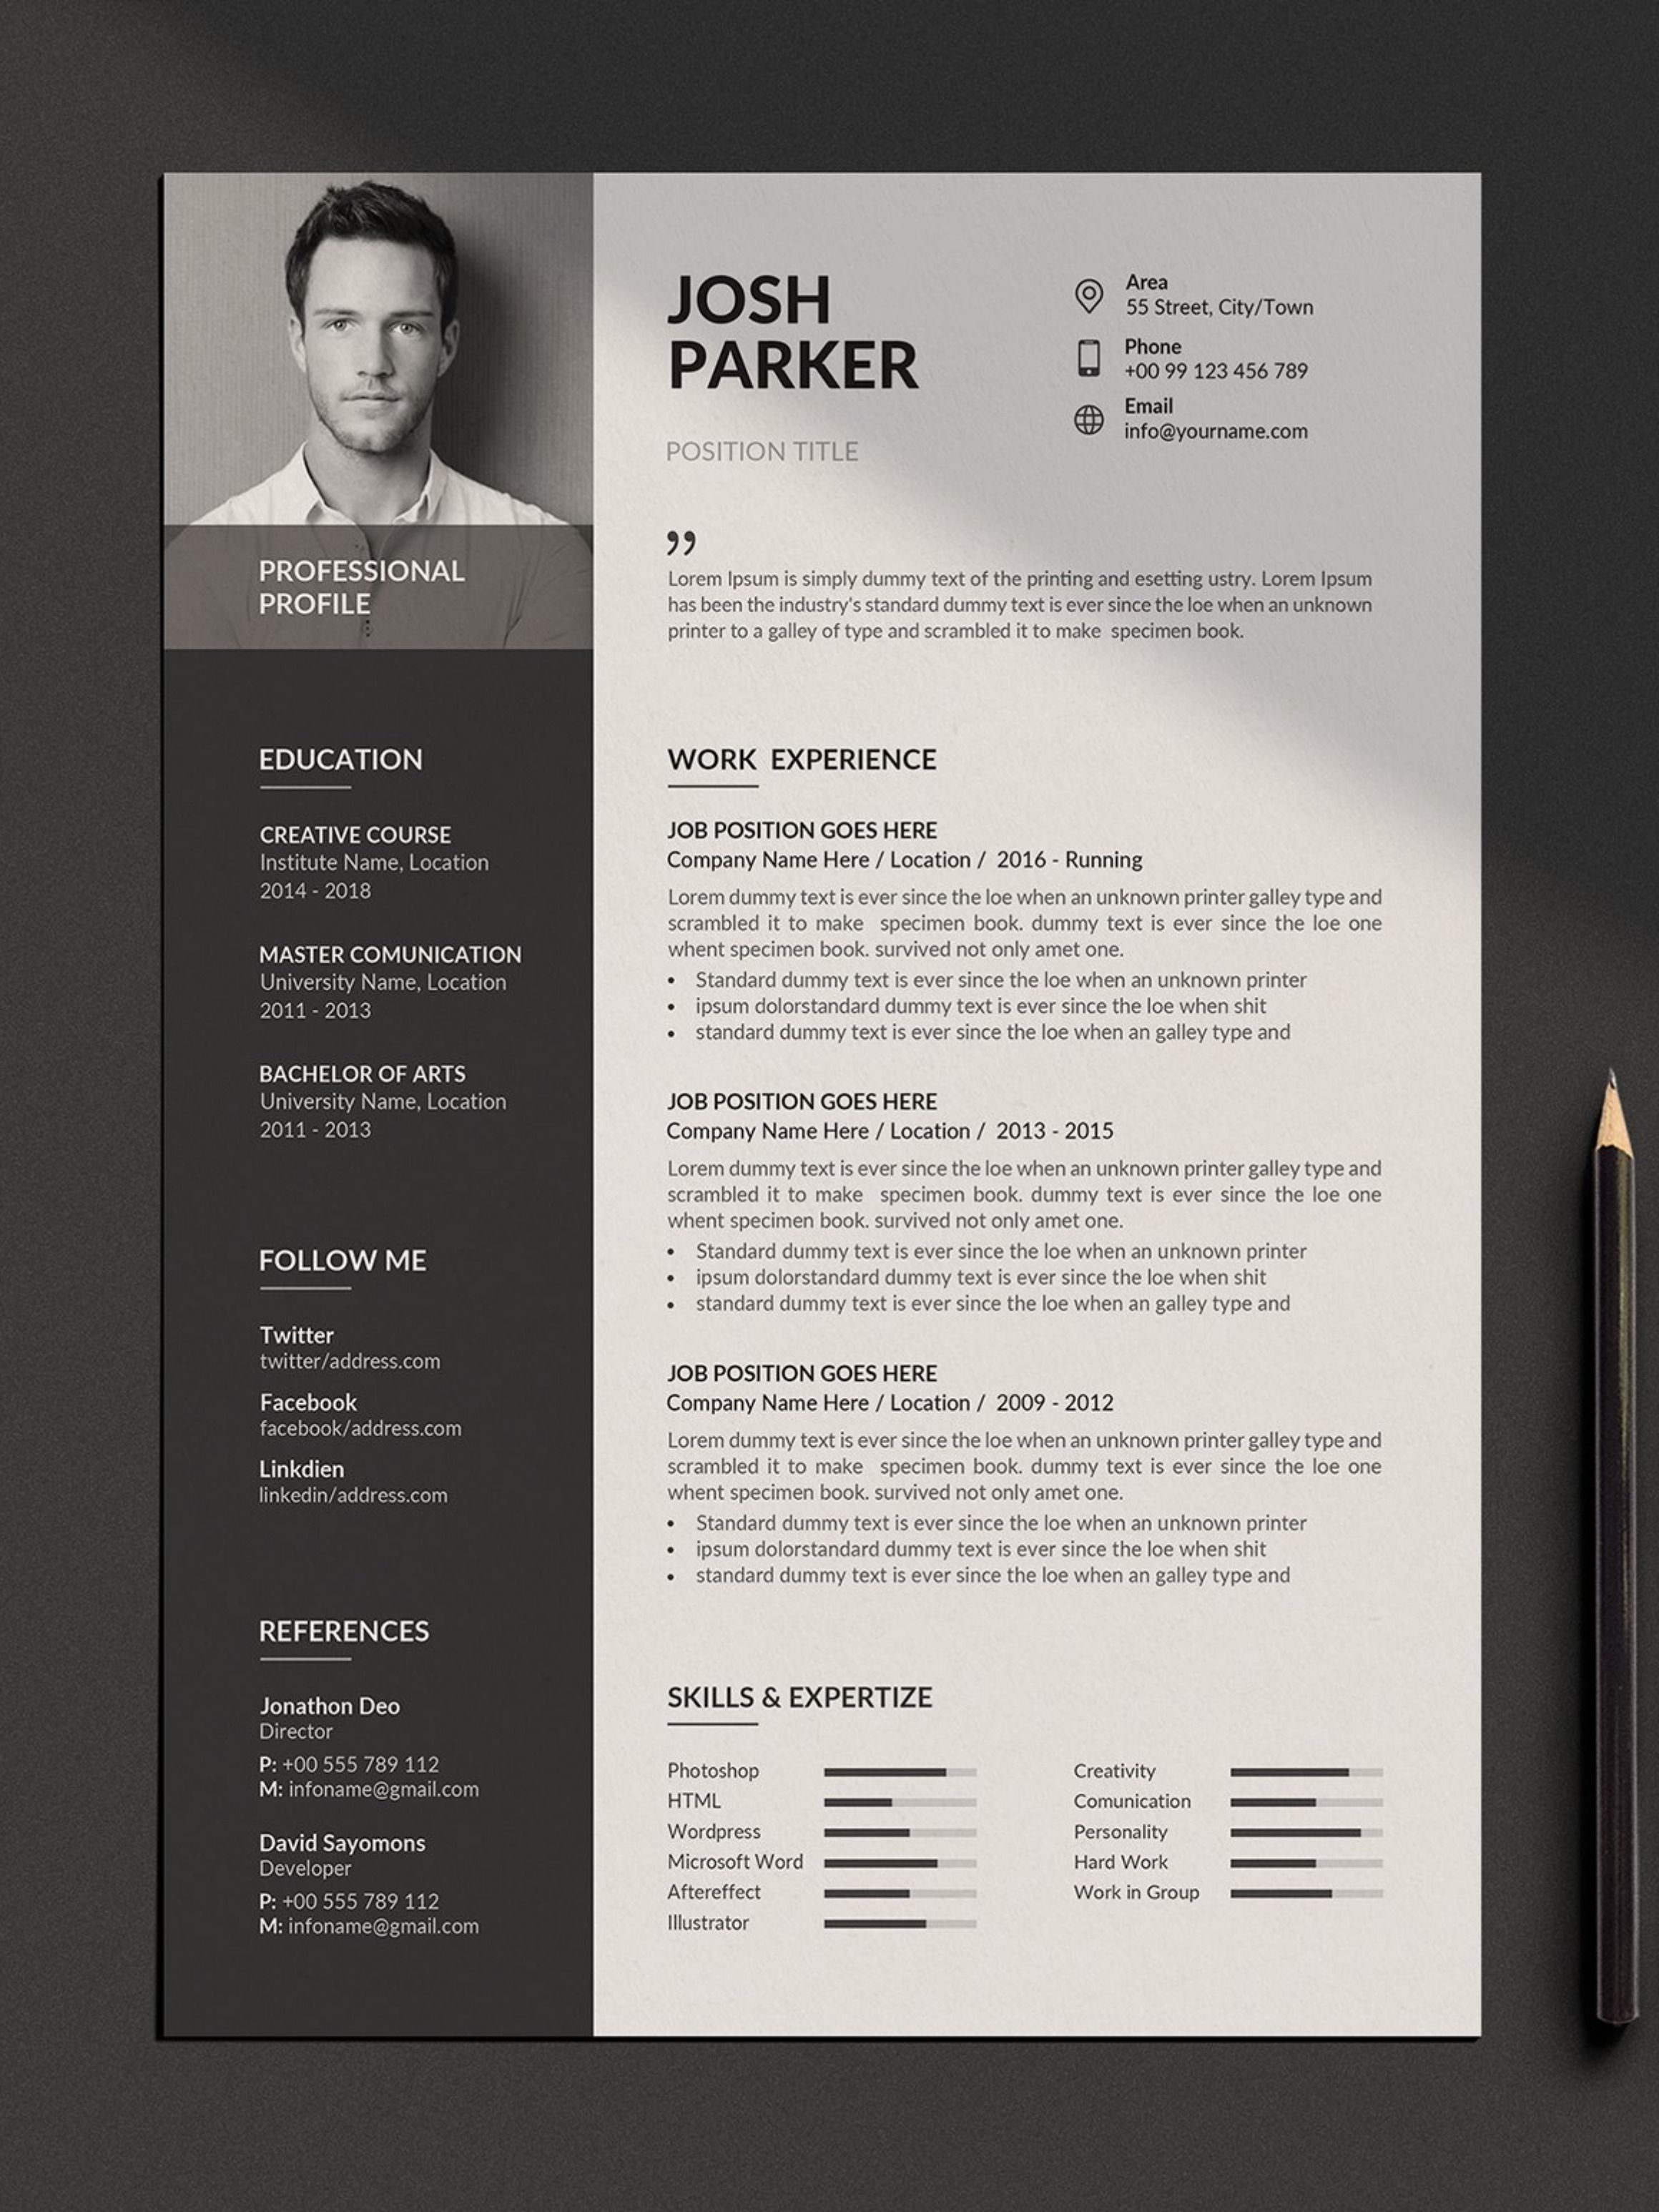 Resume Template Cover Letter Cv Template Resume For Word Creative Resume Resume Cover Letter Template Resume Template Cover Letter For Resume